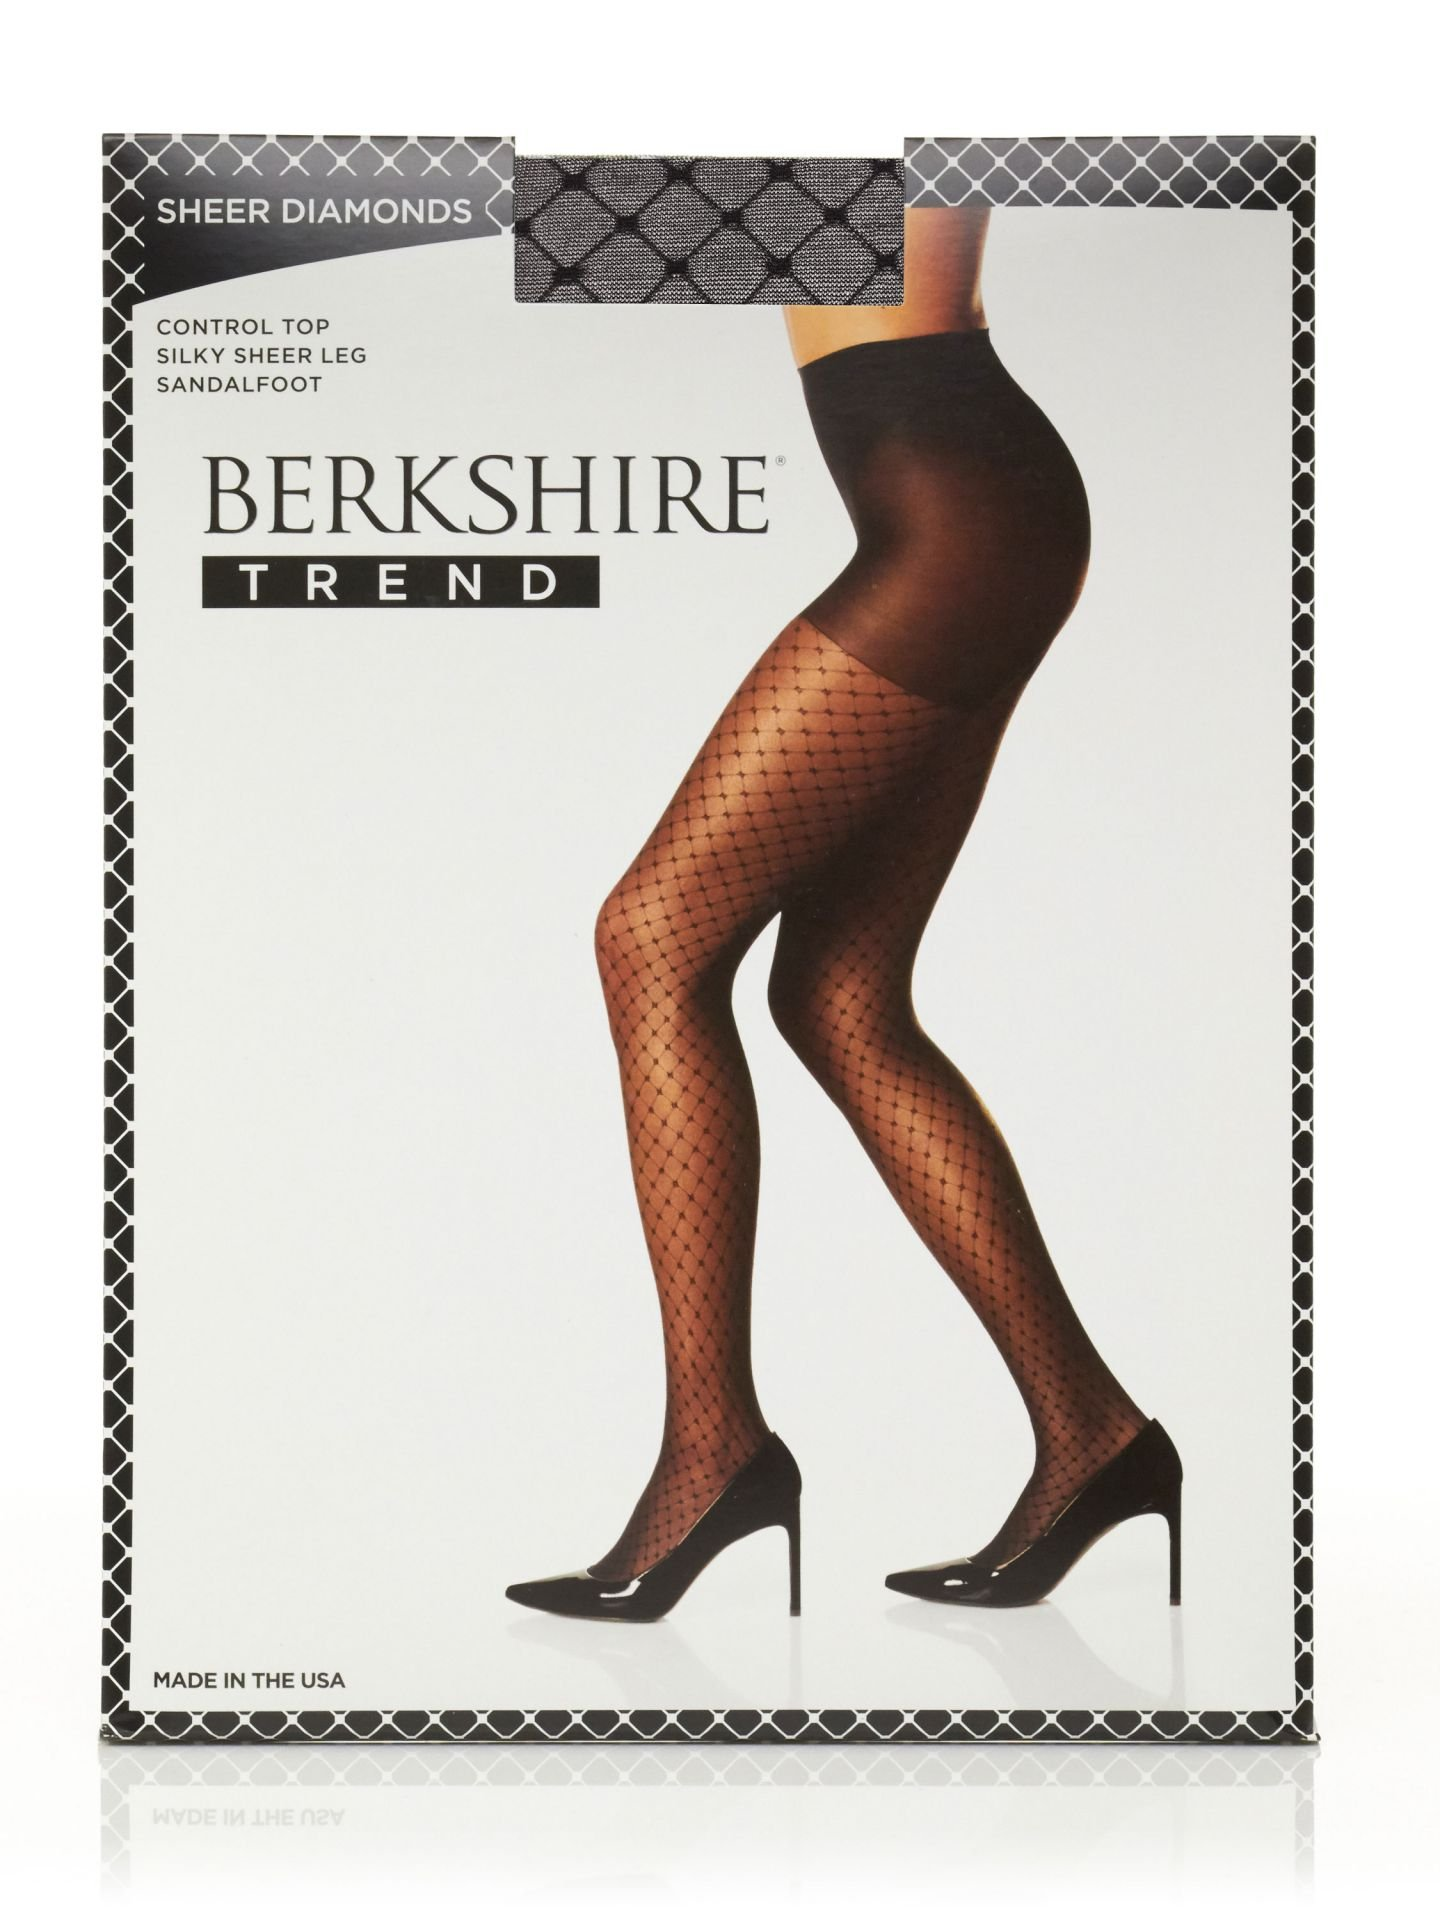 Berkshire Women's Sheer Diamond Control Top Pantyhose, Fantasy Black, 1X-2X